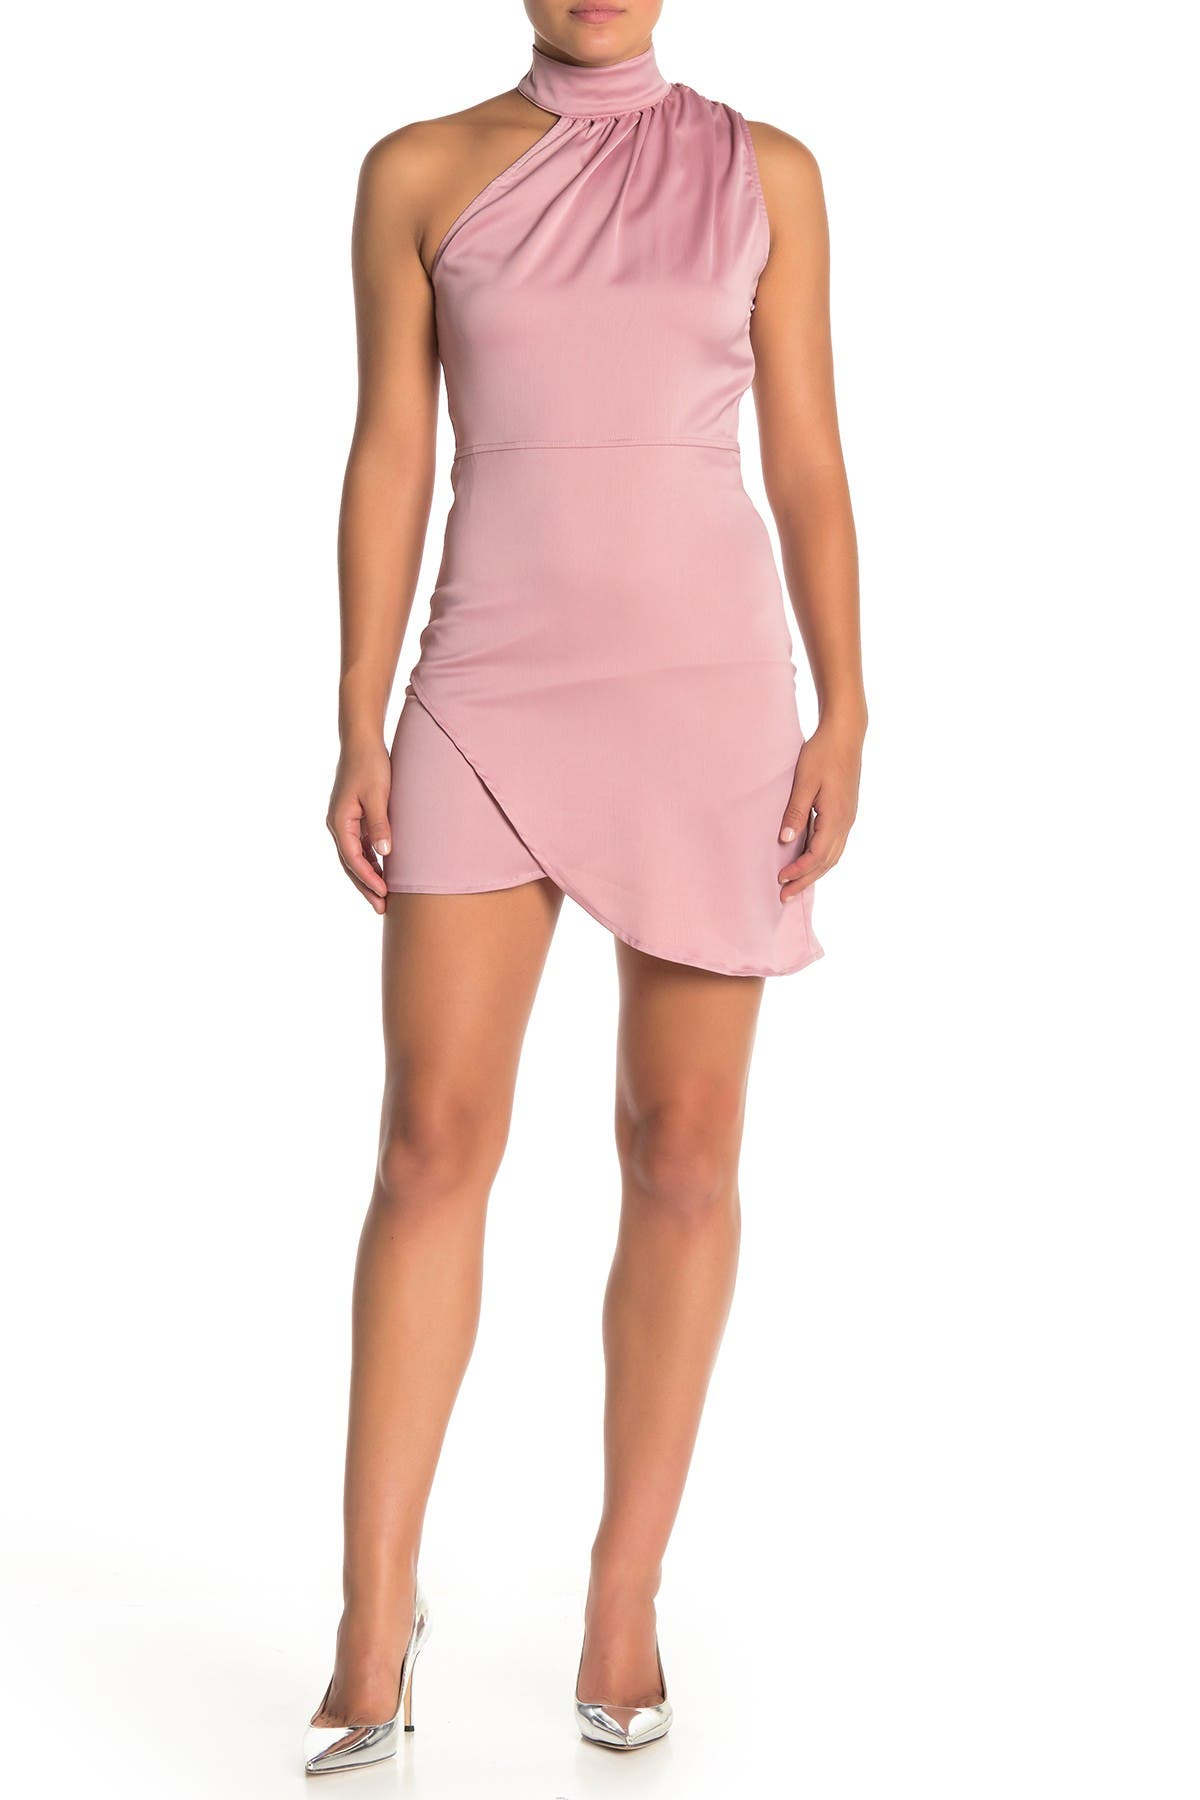 Image of KENDALL AND KYLIE Mock Neck Asymmetrical Satin Mini Dress